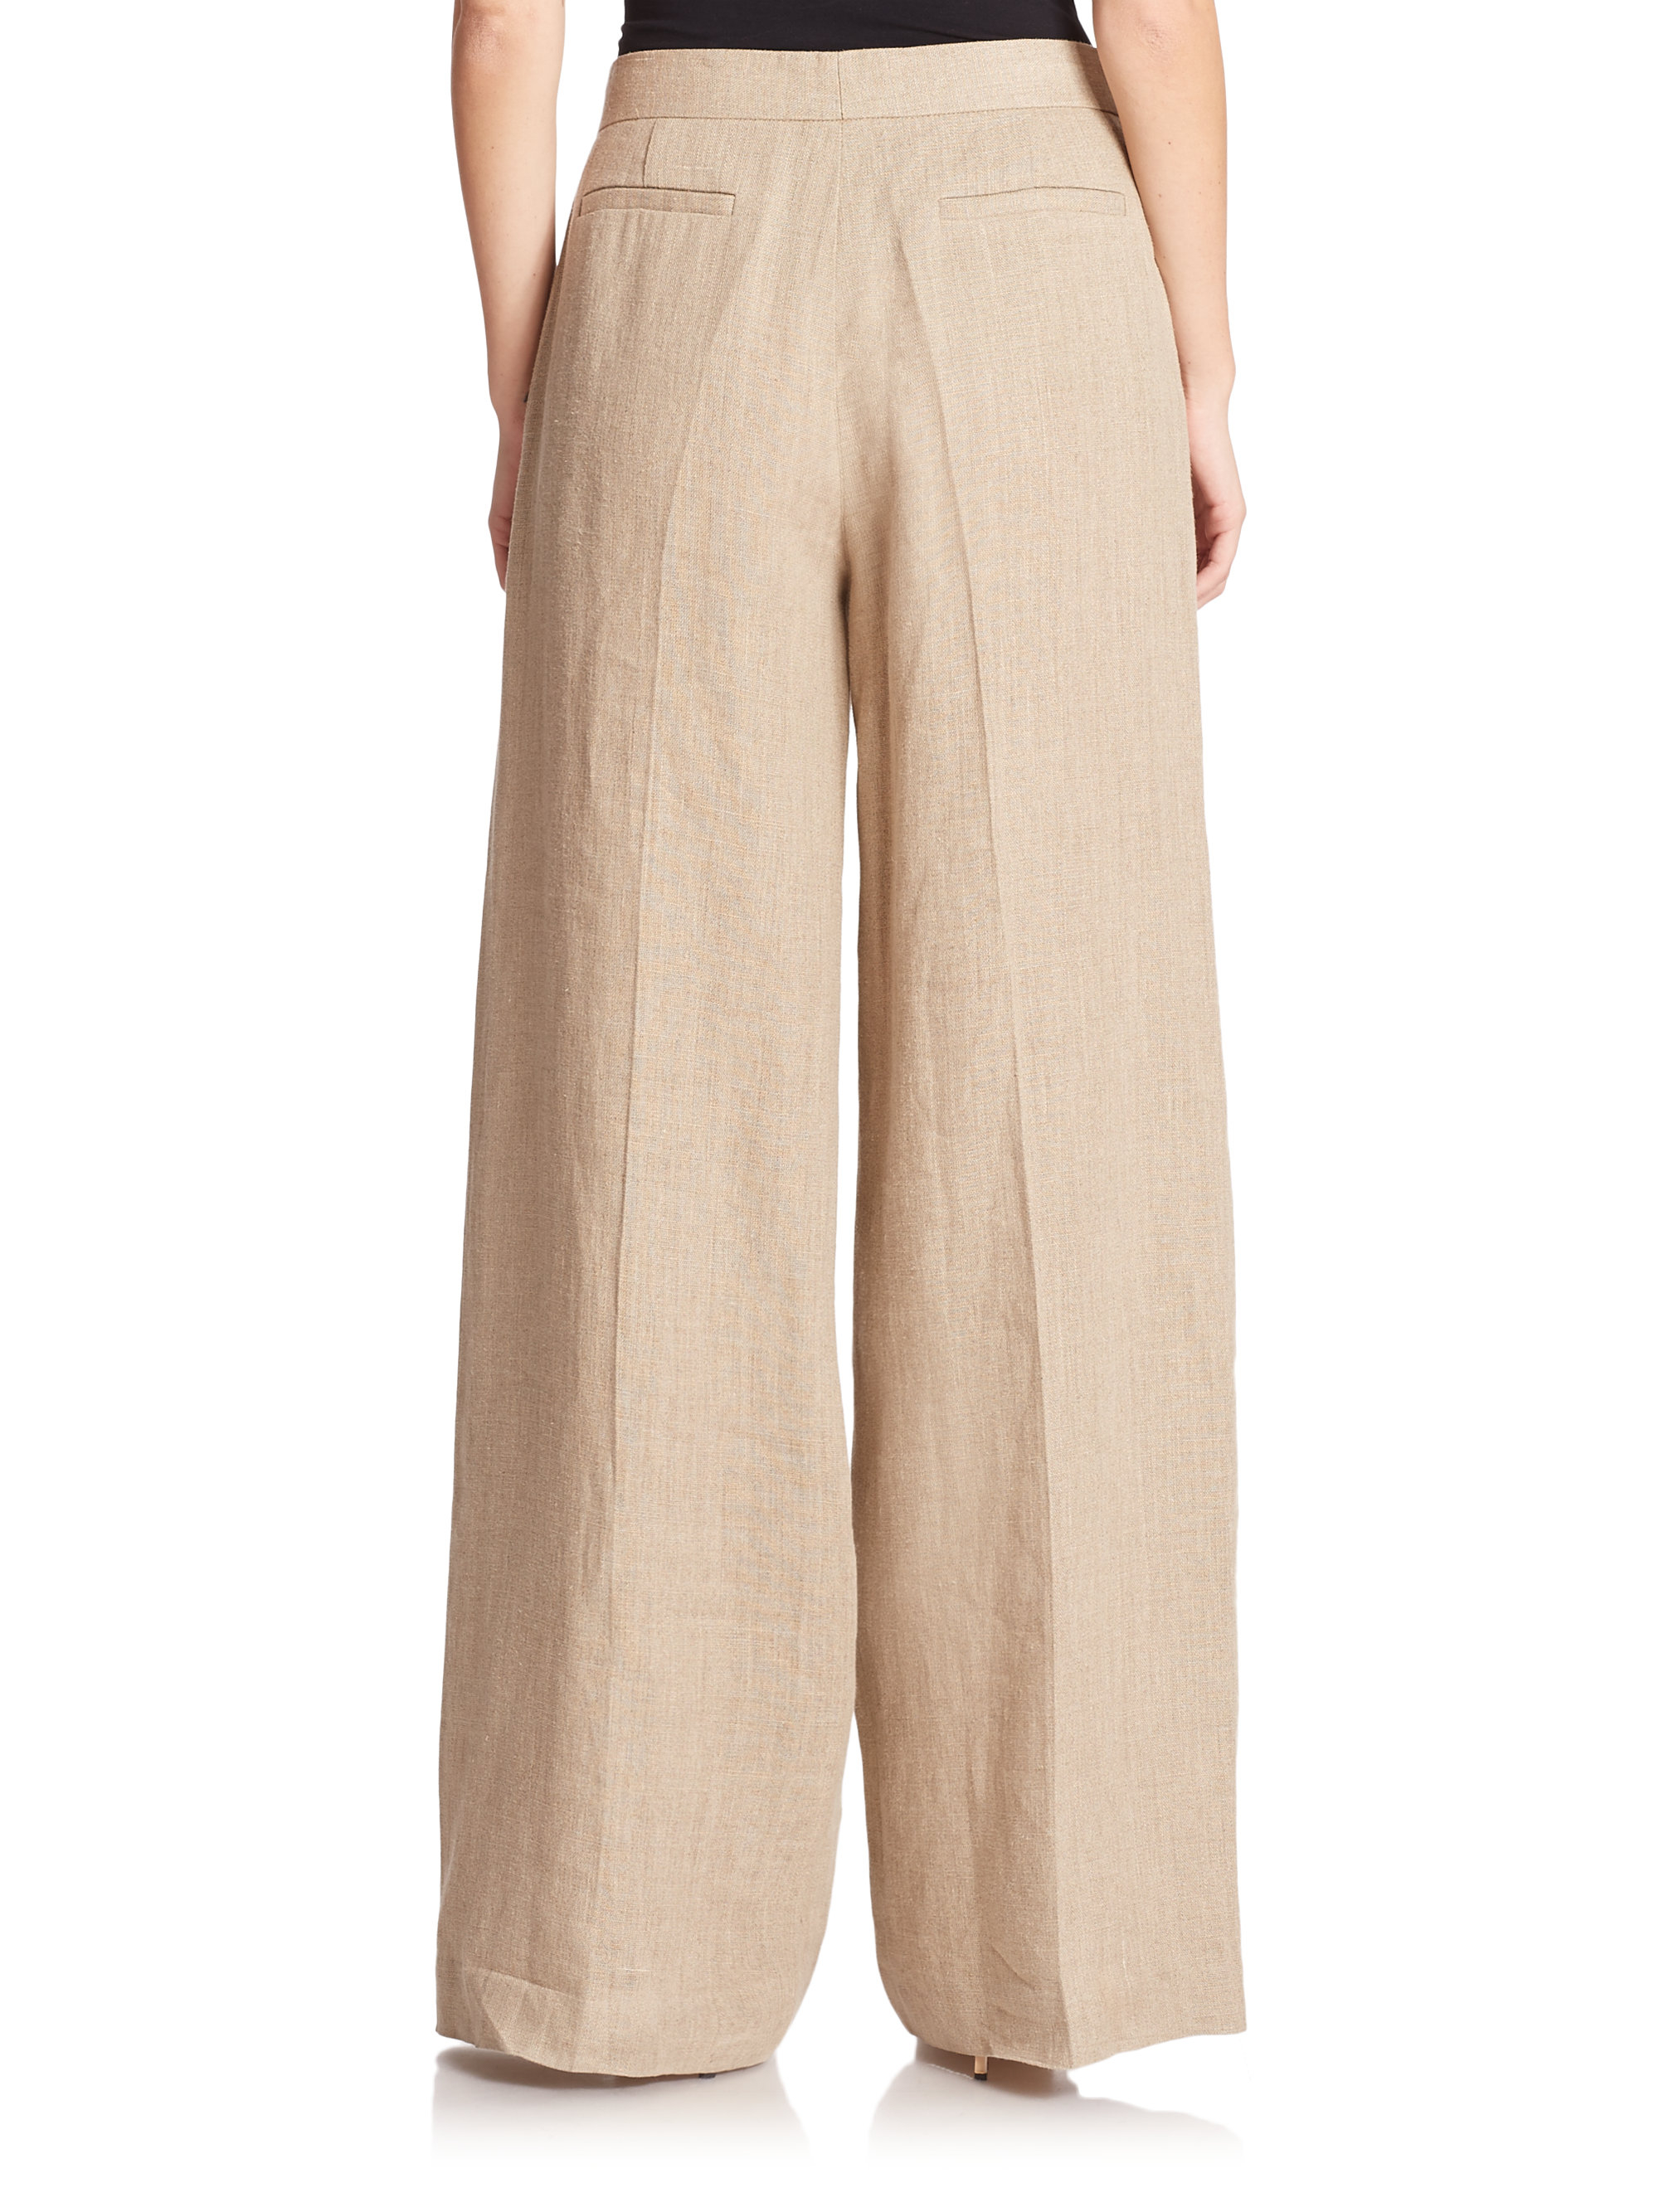 Theory Grinetta Linen Palazzo Pants in Natural | Lyst